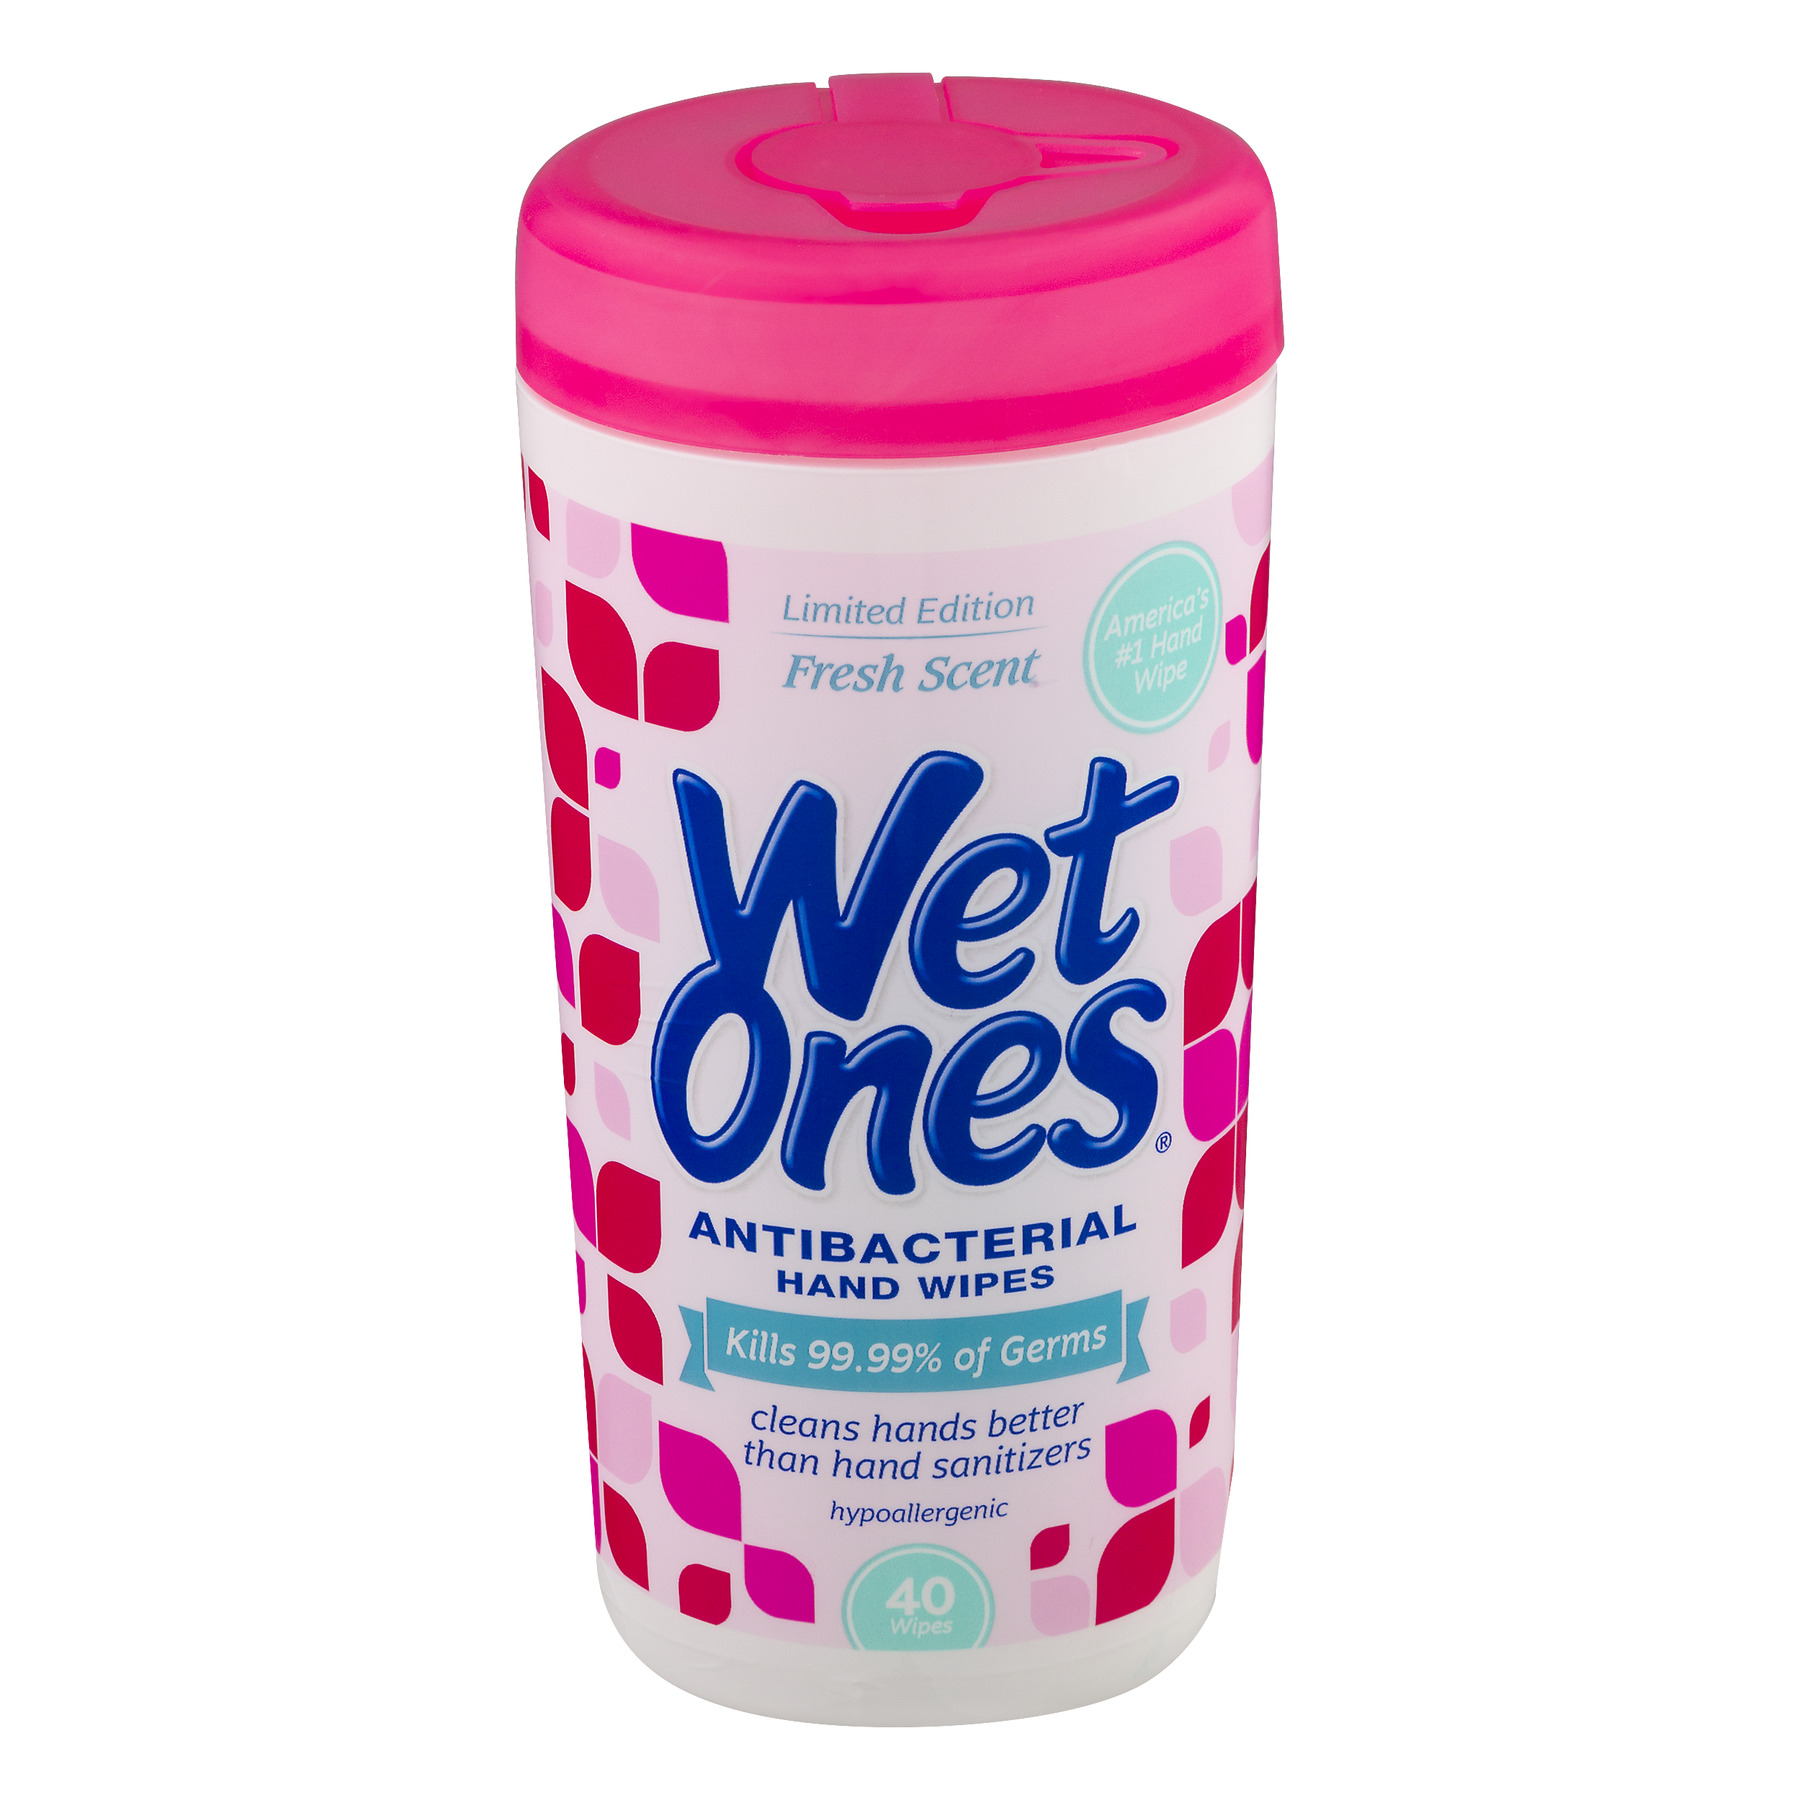 Wet Ones Antibacterial Hand Wipes Fresh Scent - 40 CT40.0 CT